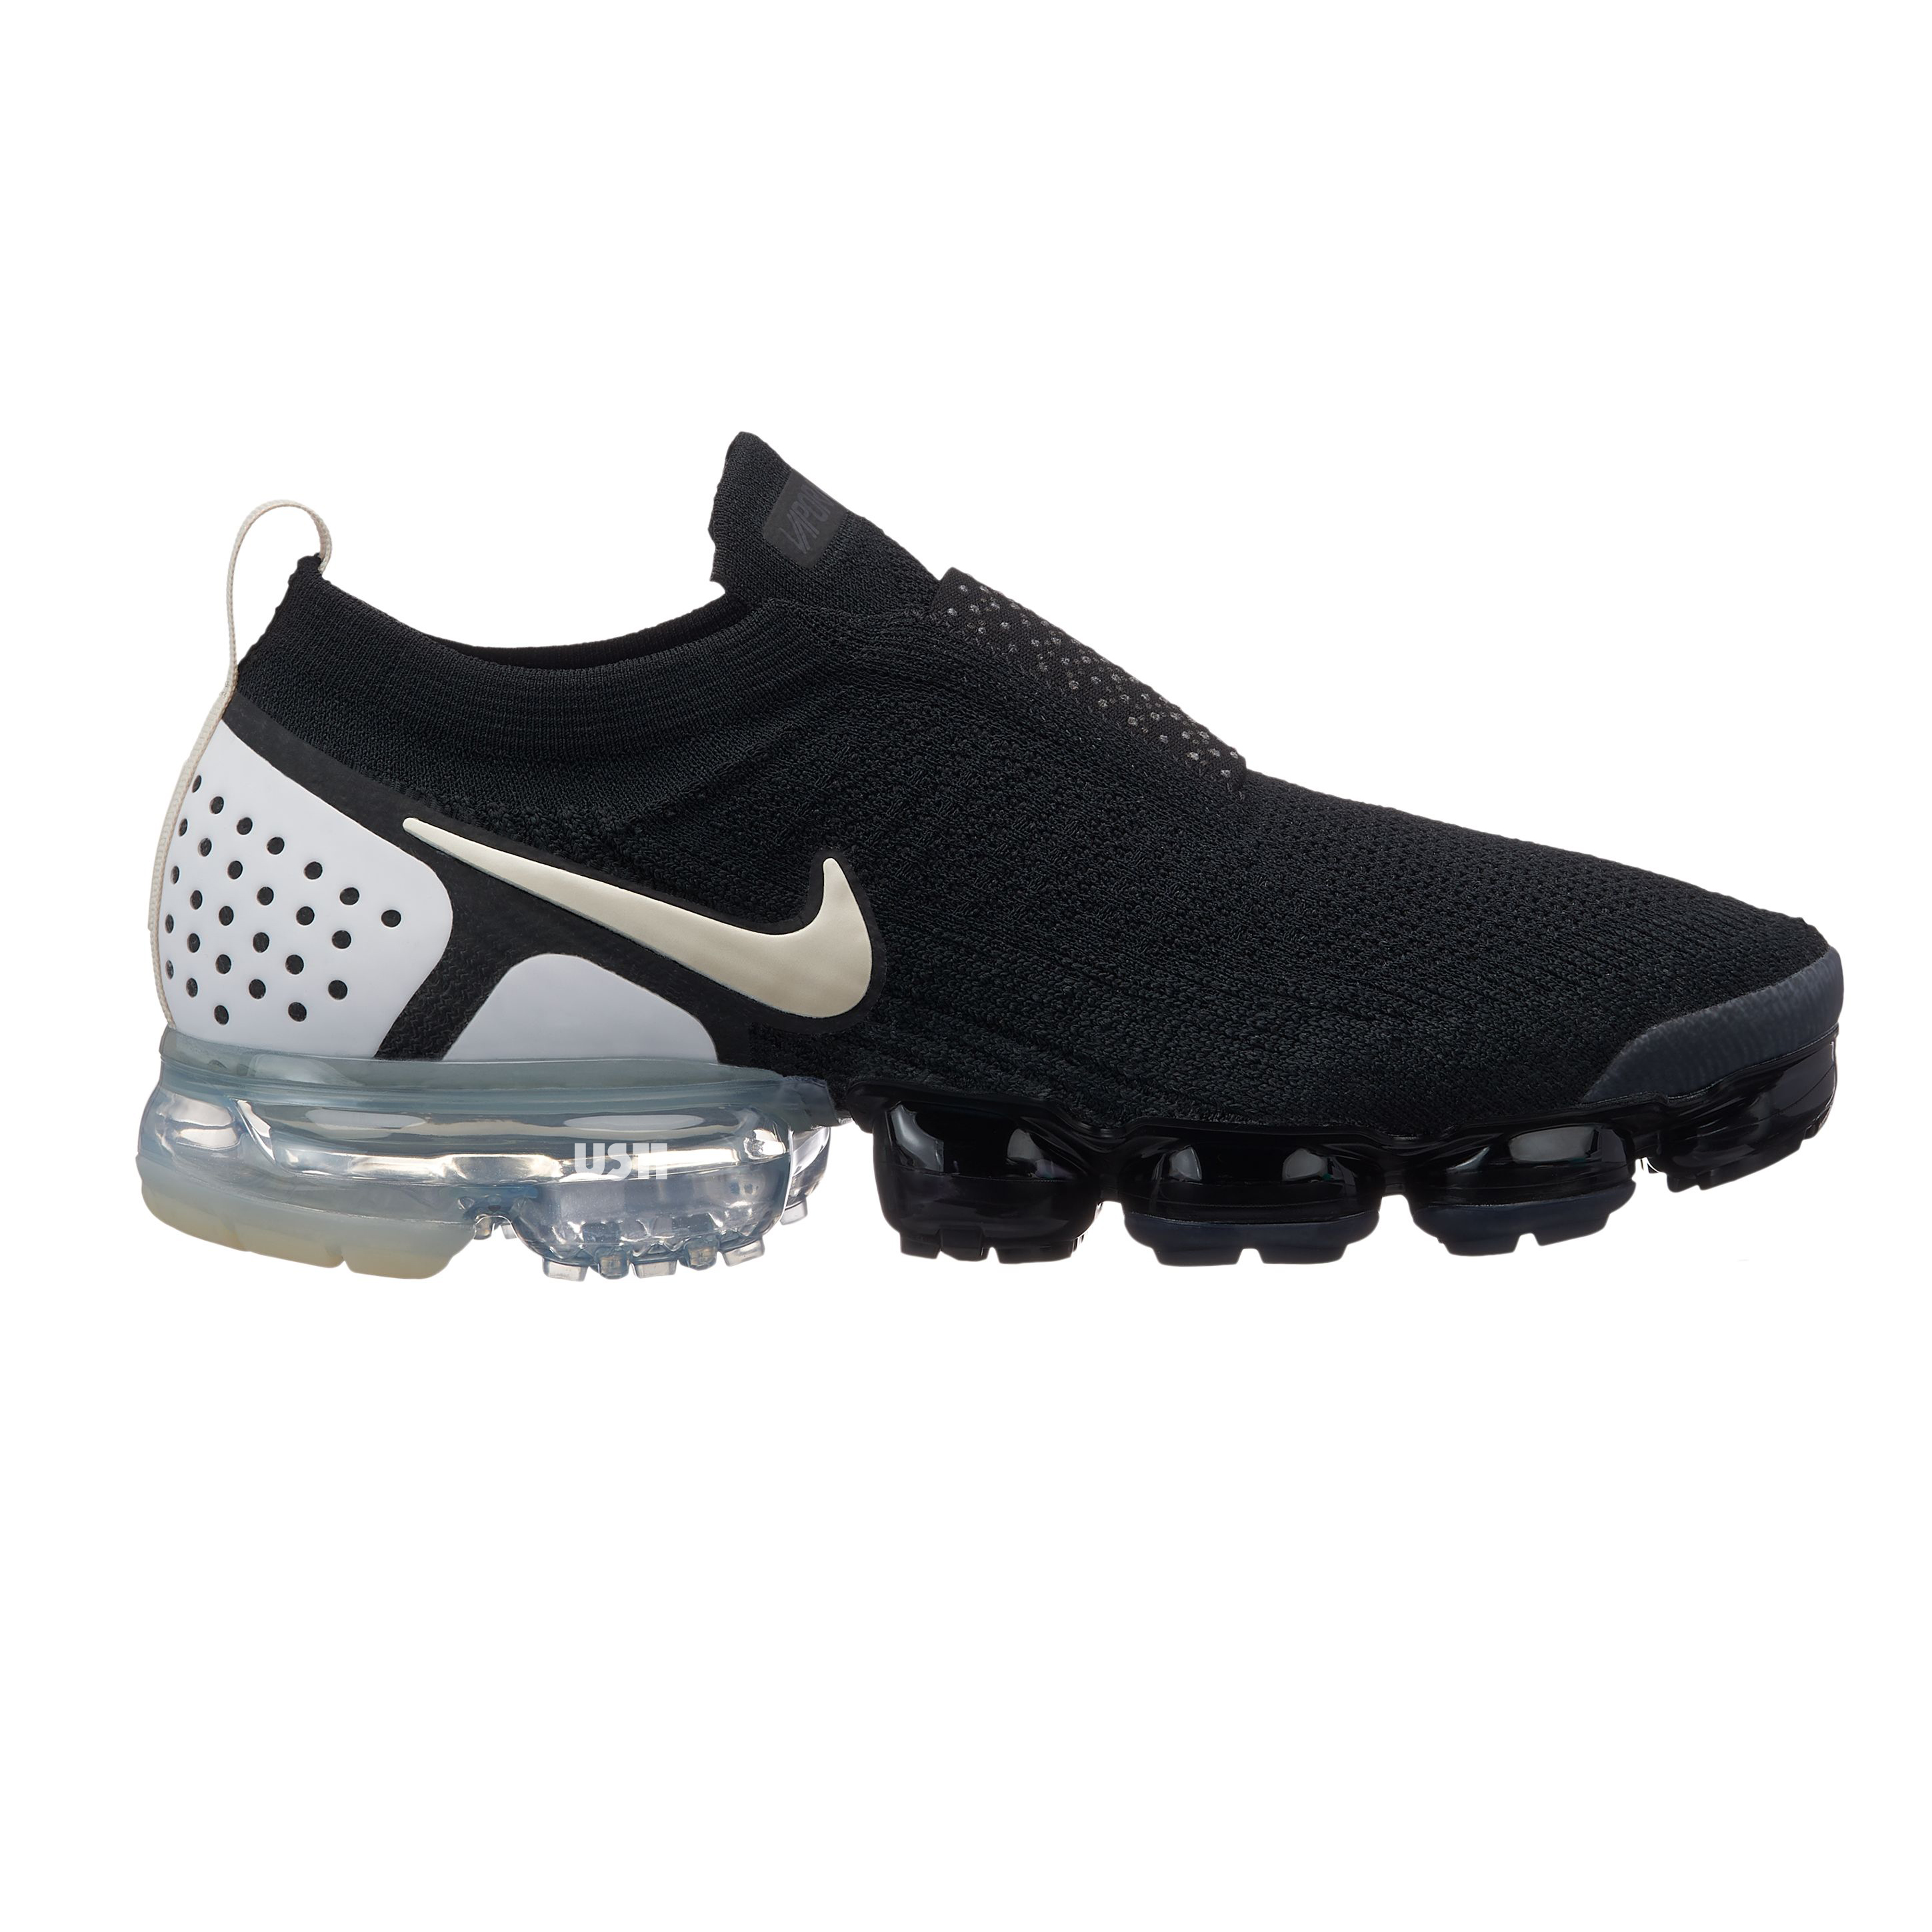 The Nike Air VaporMax Flyknit Moc 2 Surfaces Online ...